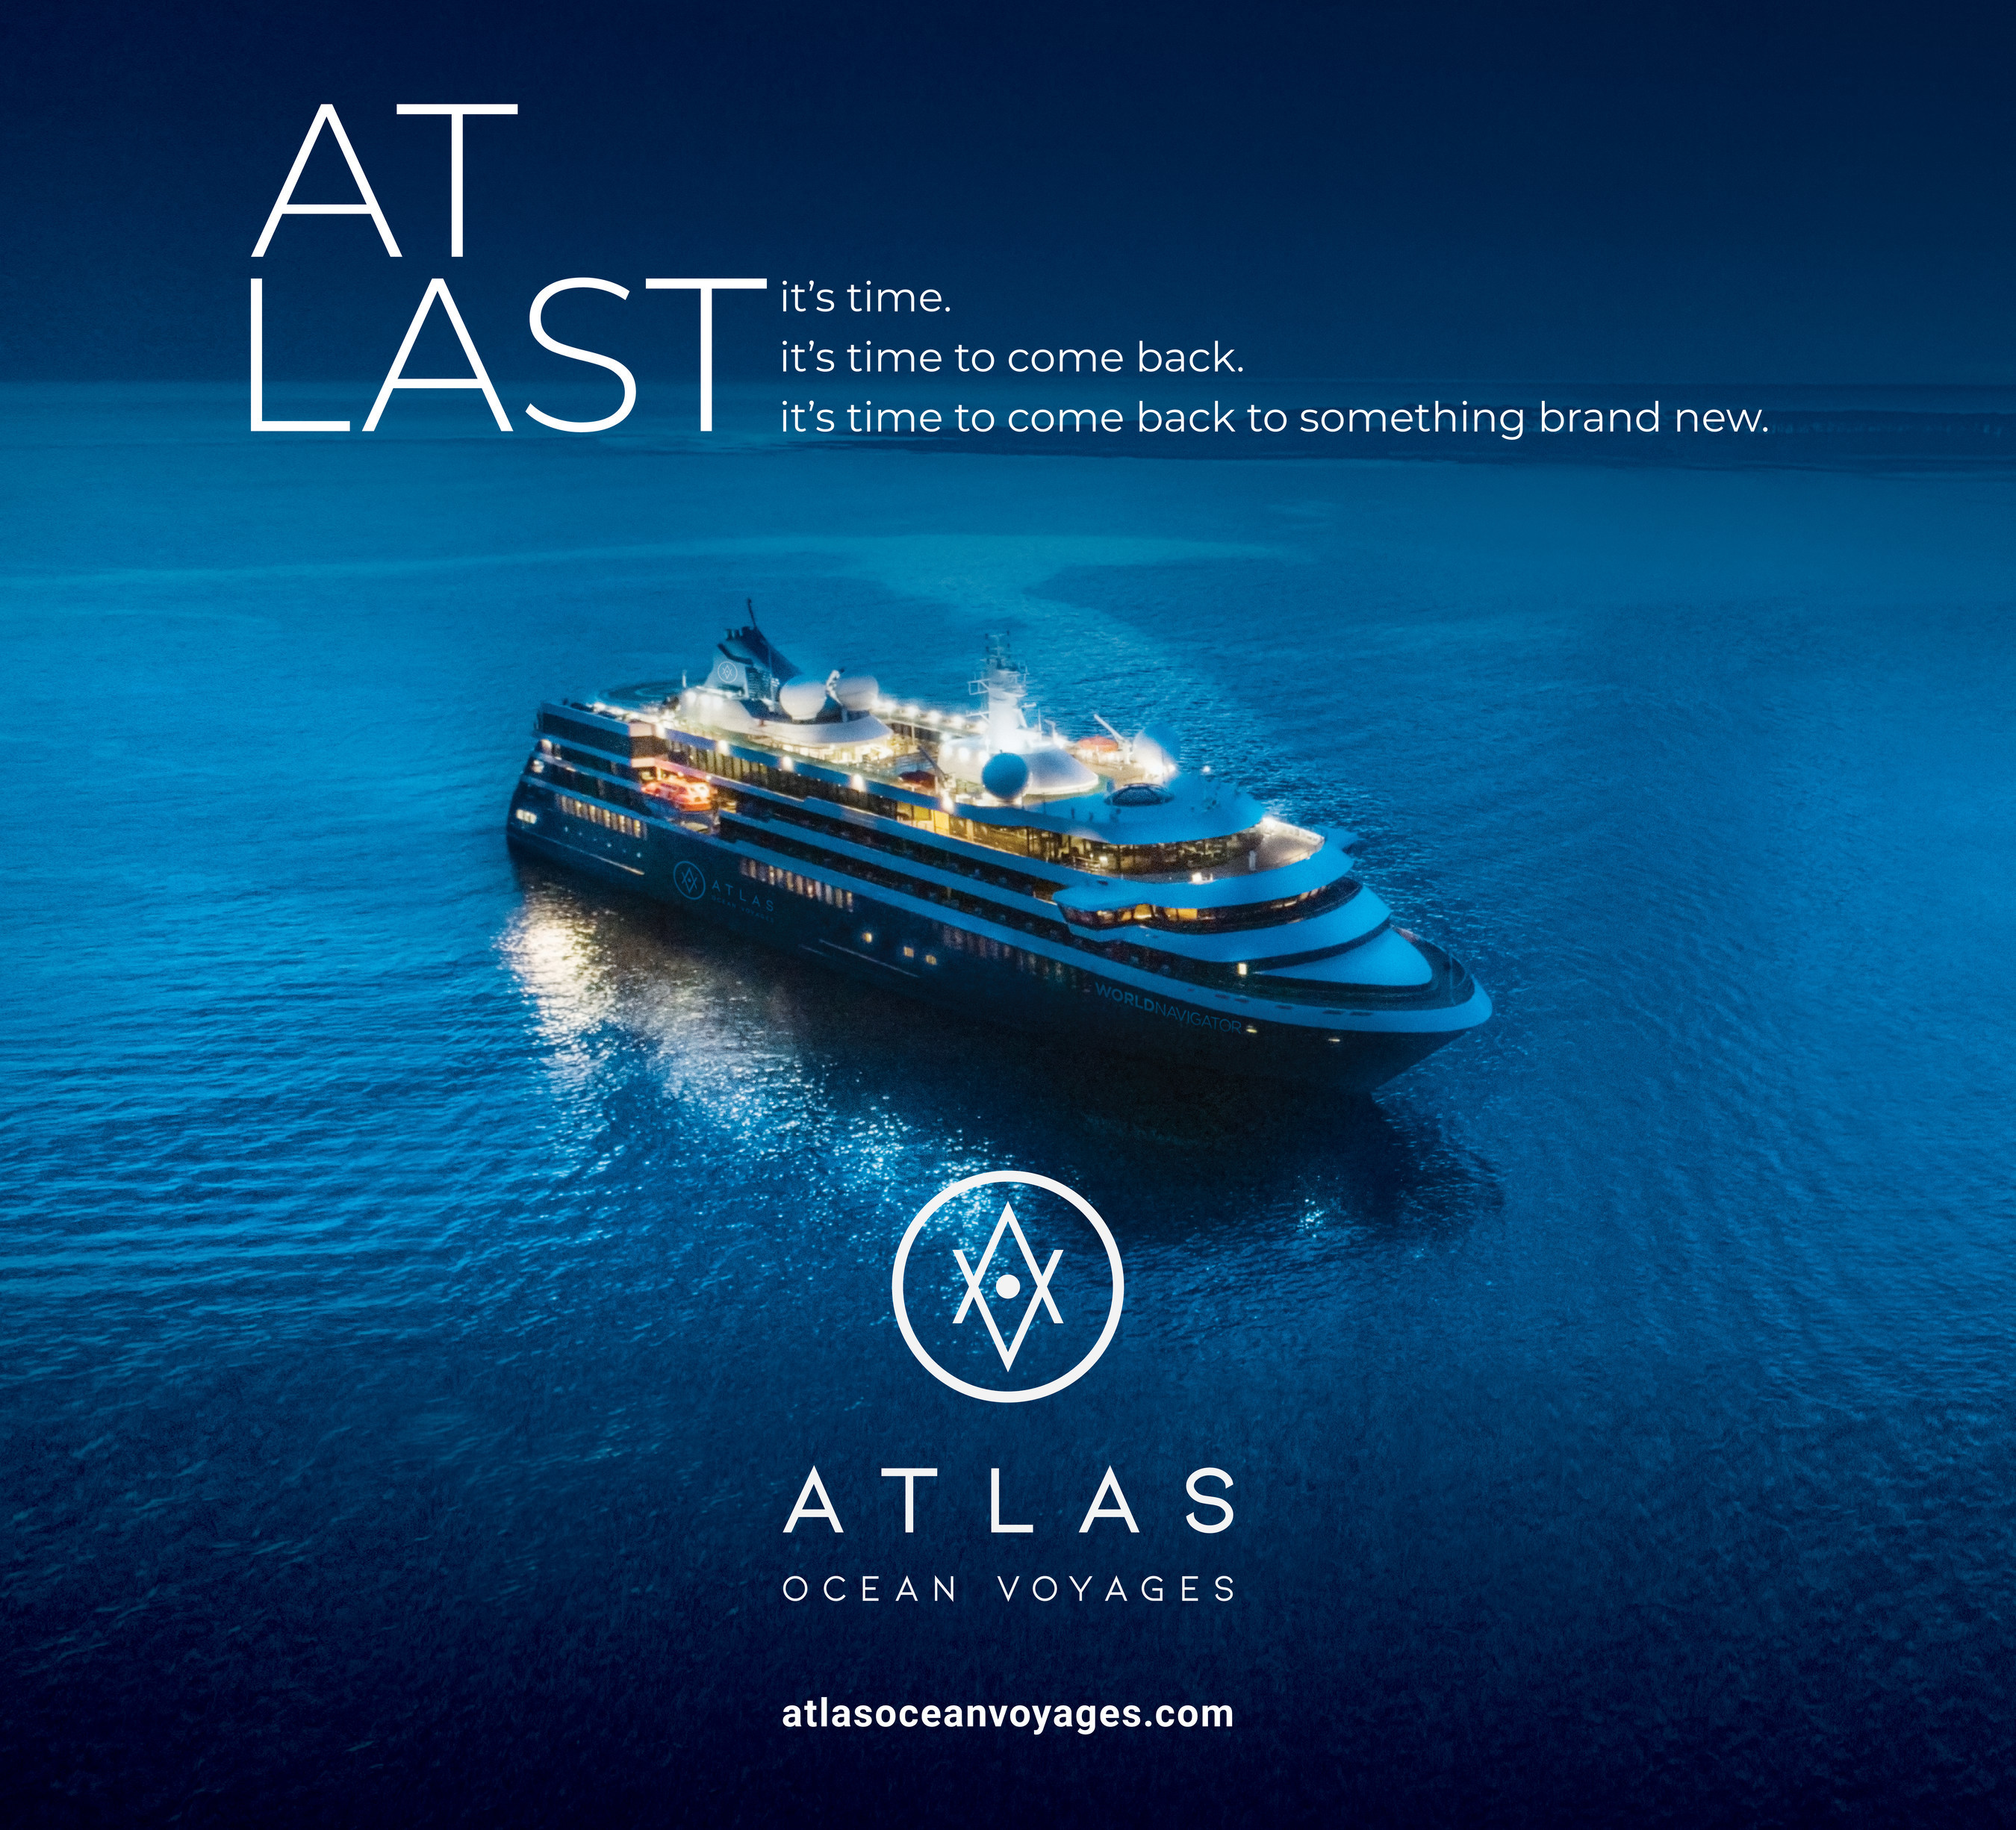 Atlas Launches At Last... Atlas Marketing Campaign to Welcome Travelers Back (November 2020)